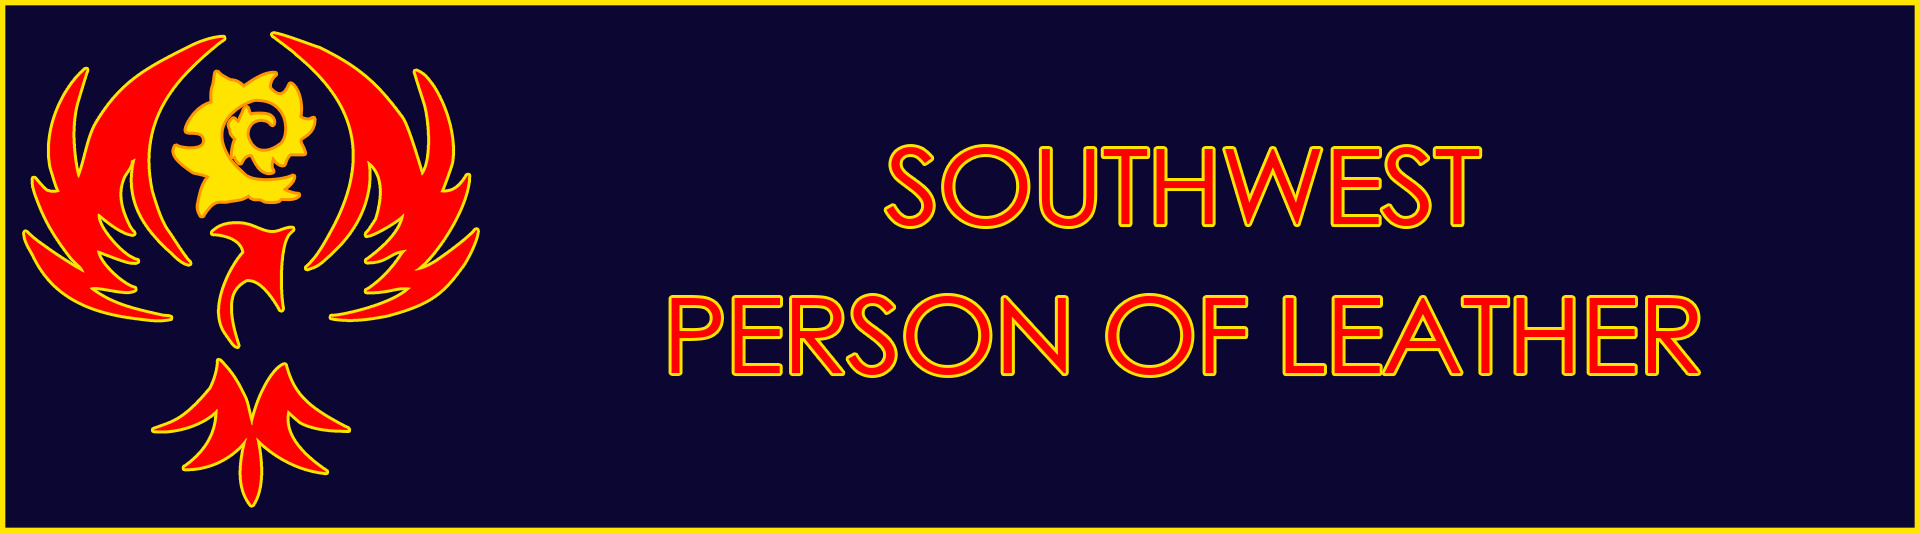 Southwest Person of Leather - a partner with Southwest Leather Conference - see us at Heatwave Arizona 2019 in Tucson, Arizona October 4-6, 2019